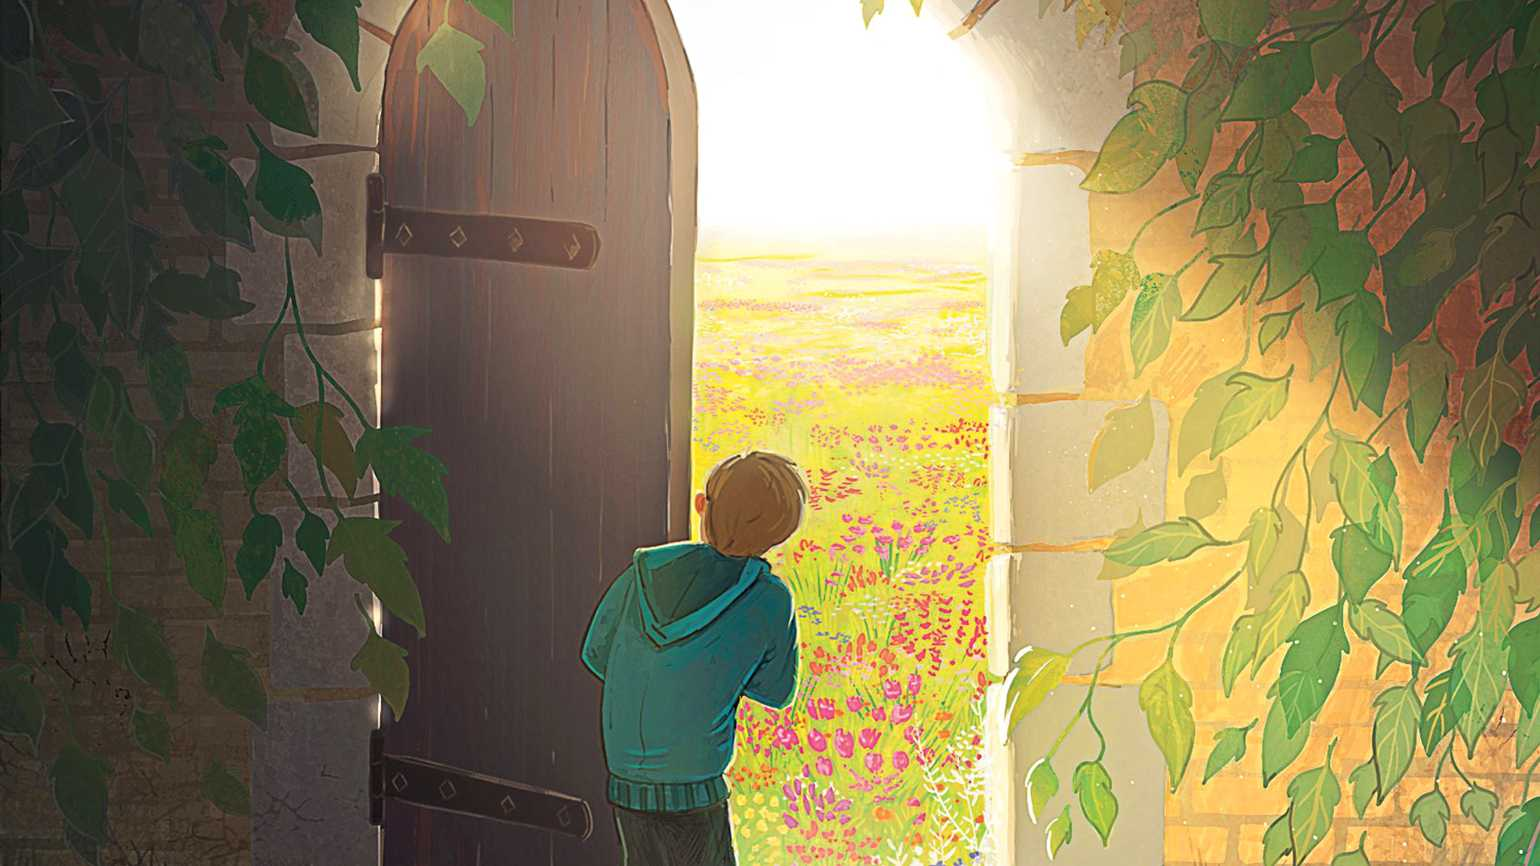 A curious child peeking out of a large mysterious door that leads to a field of flowers and sunlight.